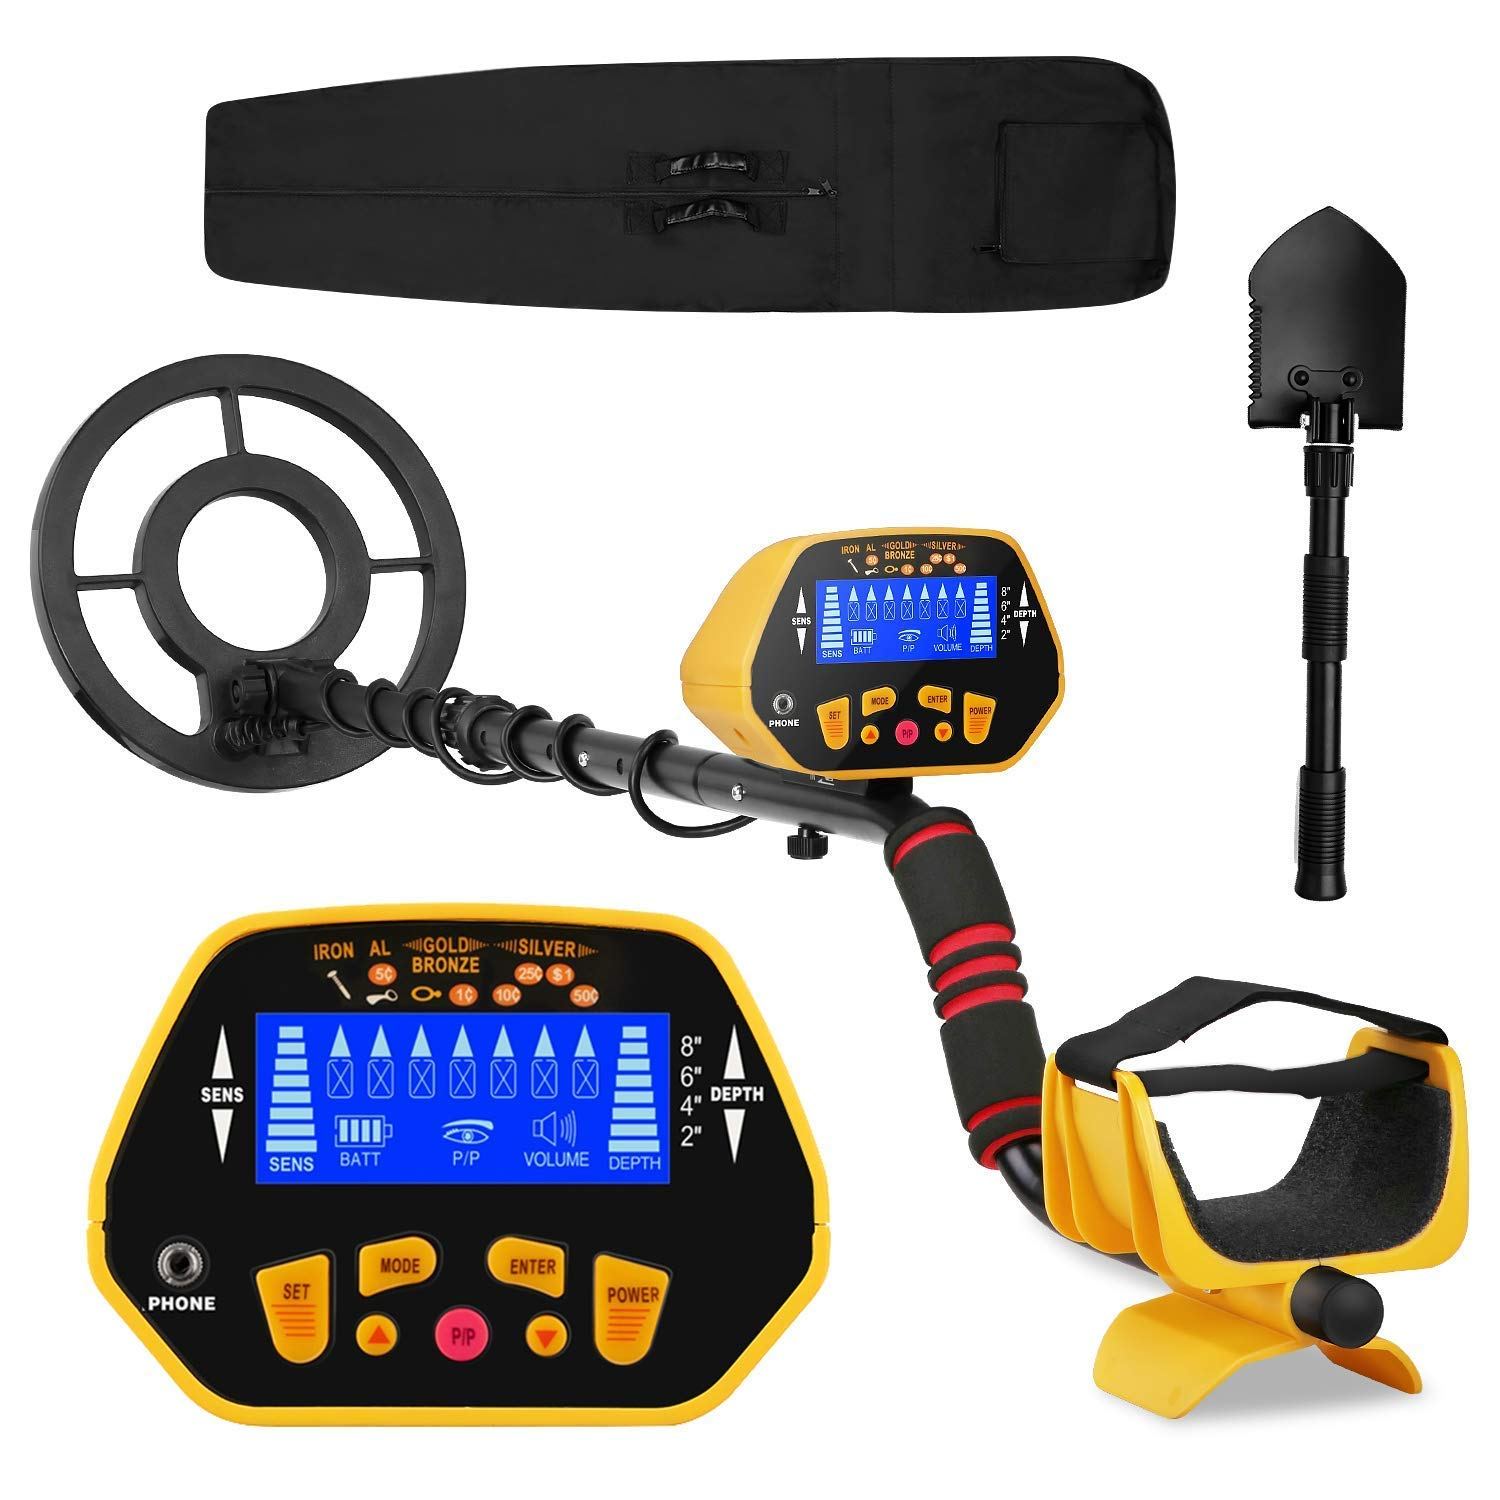 Canway Metal Detector High Accuracy Adjustable Waterproof Metal Finder, LCD Display with Light, Carrying Bag and Shovel Included, 7 Target Categories, Depth Indication, Audio Prompt, with P/P Function by CANWAY